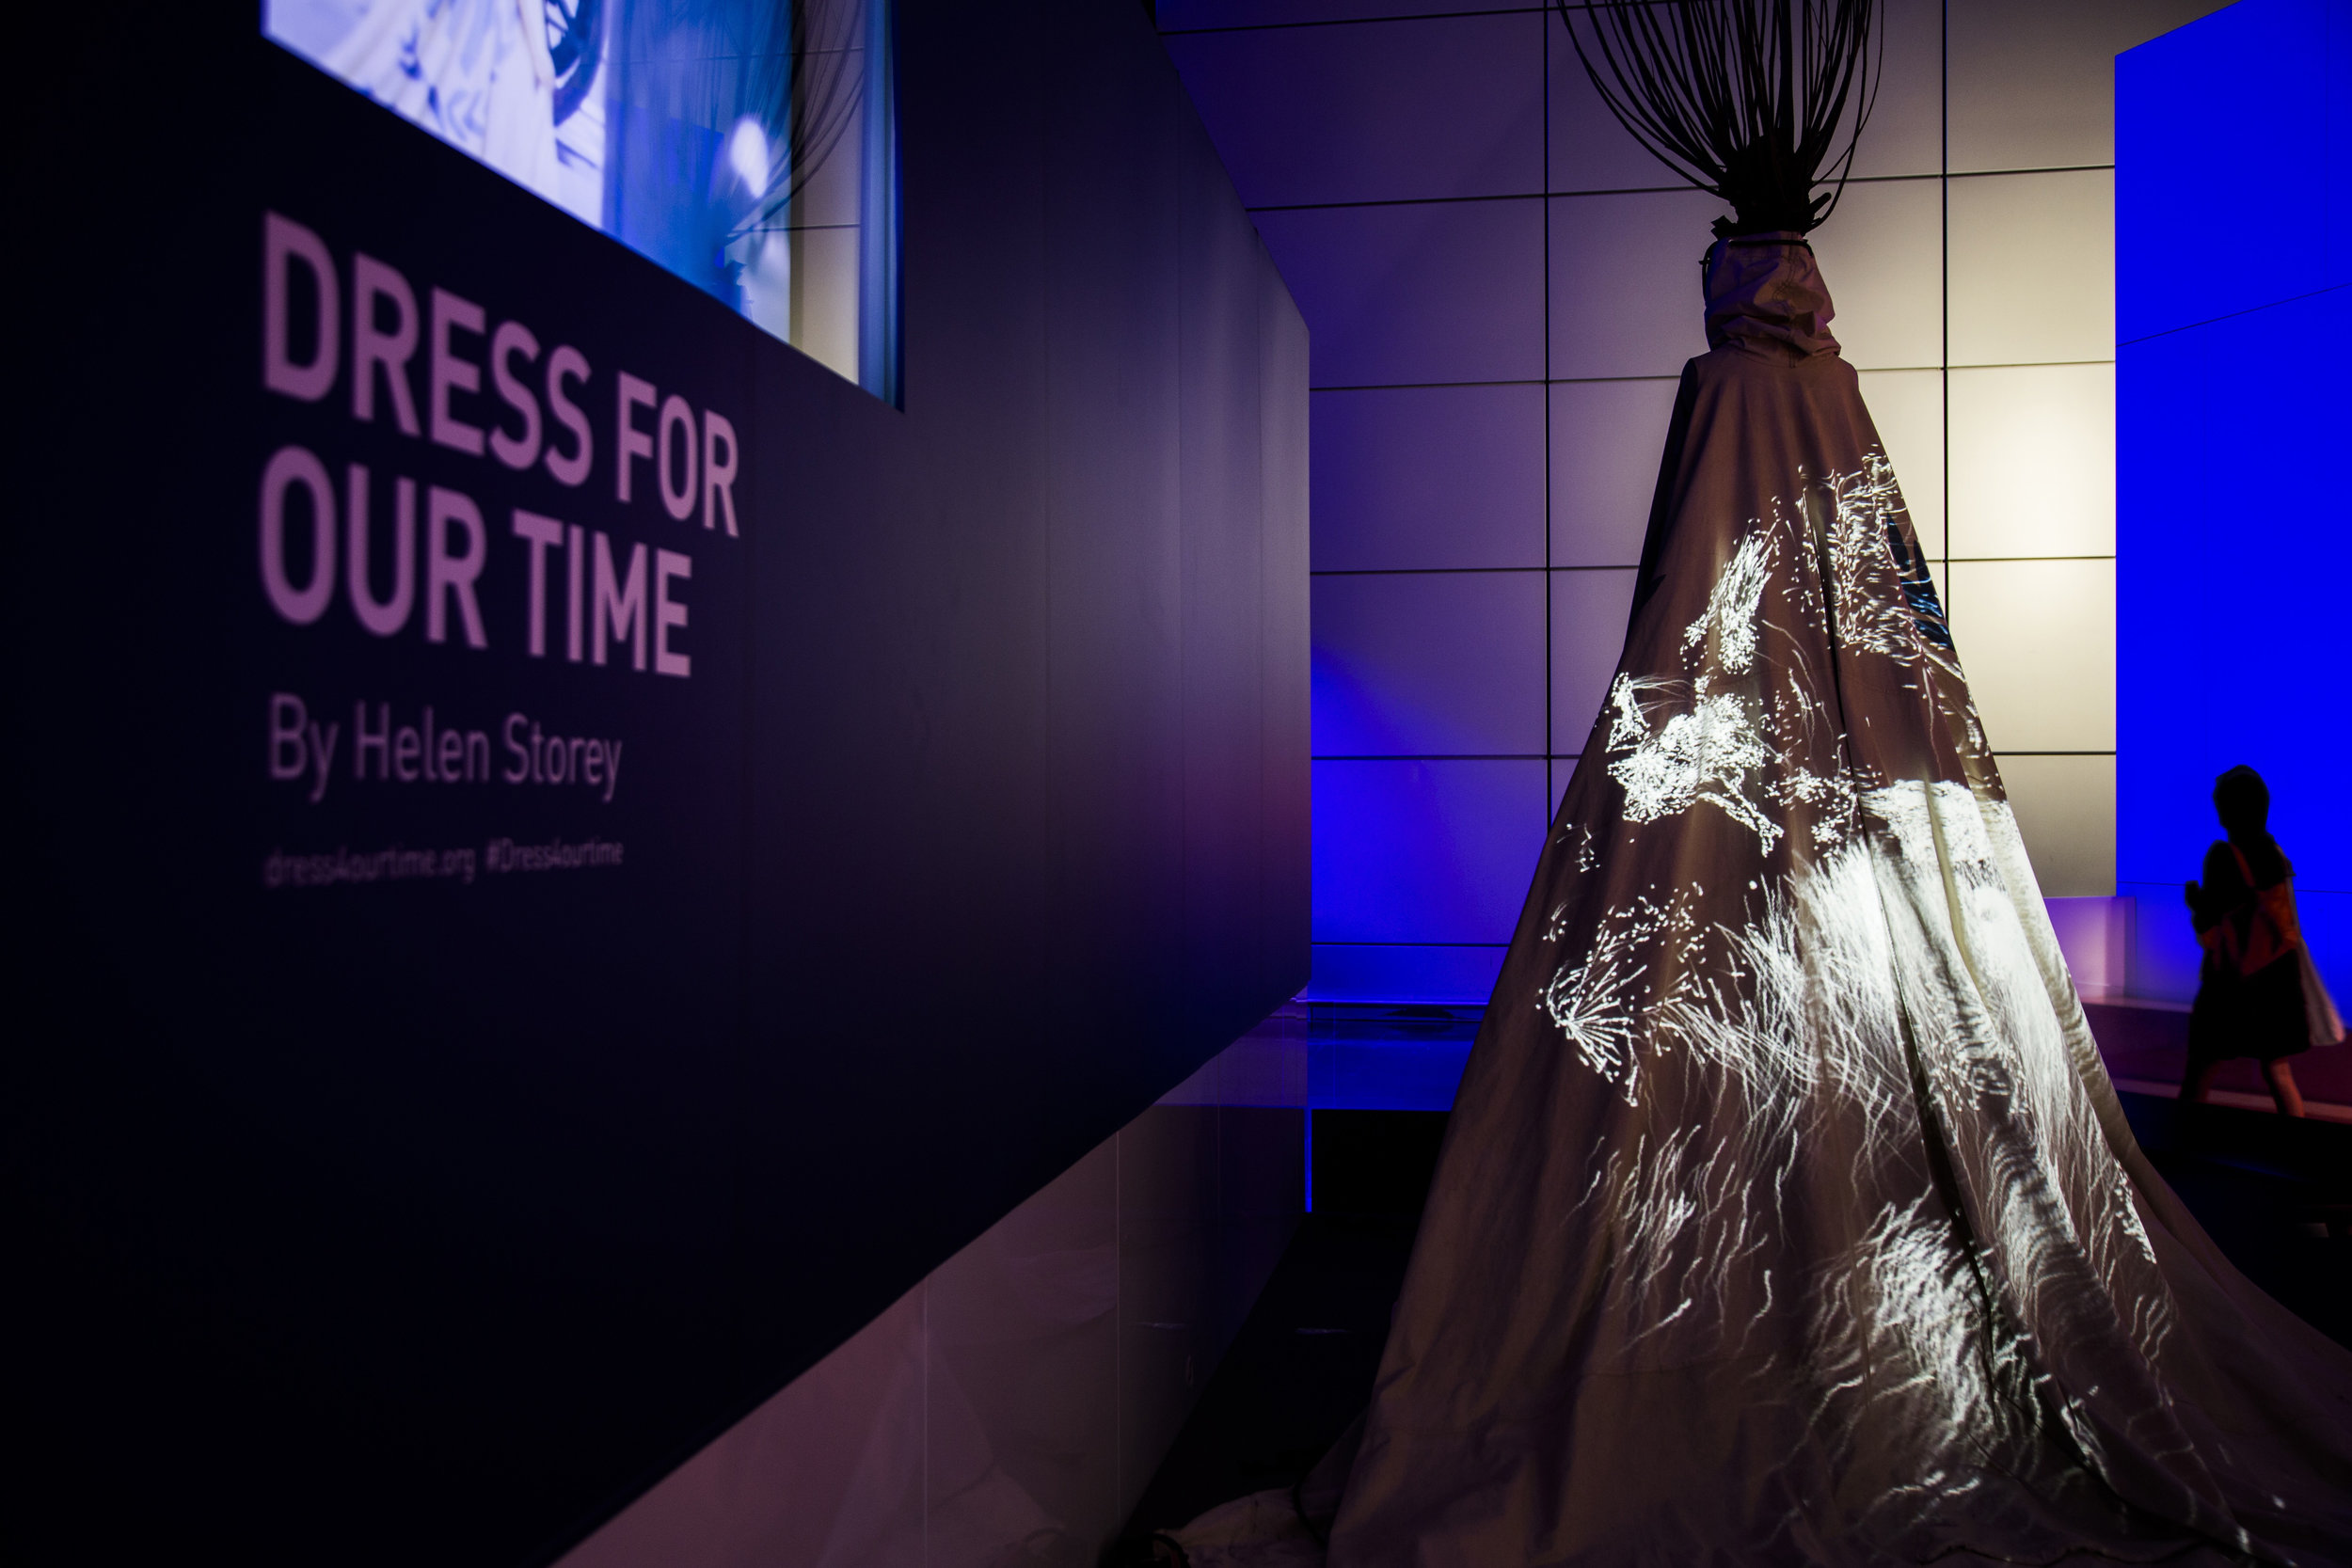 Dress at The Science Museum London